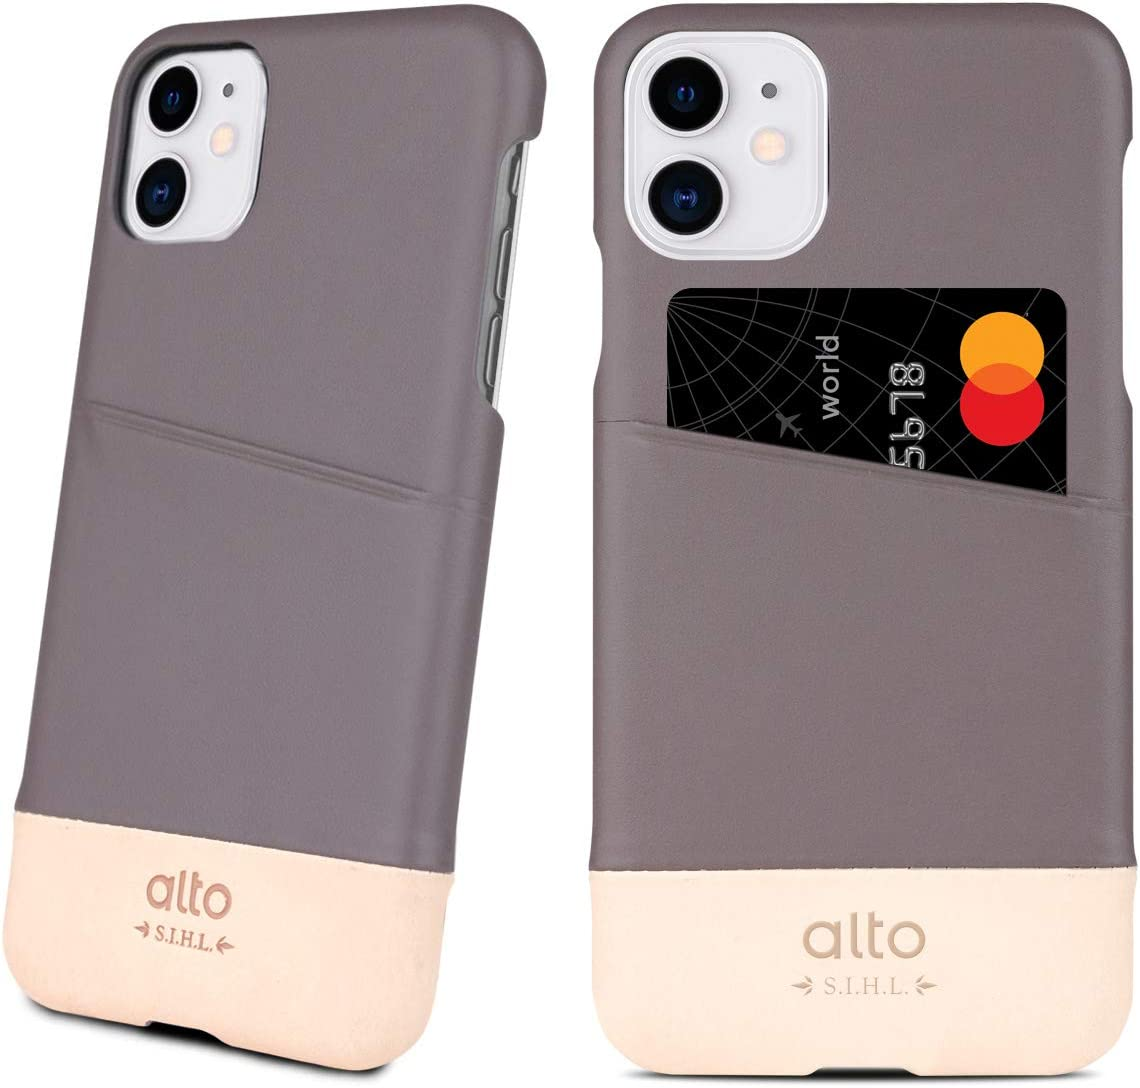 Alto Metro for iPhone 11 Pro Max Wallet Case (2019, 6.5 inch), Thin Italian Leather Made for iPhone 11 Pro Max Leather Case with Credit Card Slot Holder Design (Cement Grey/Original Nude)